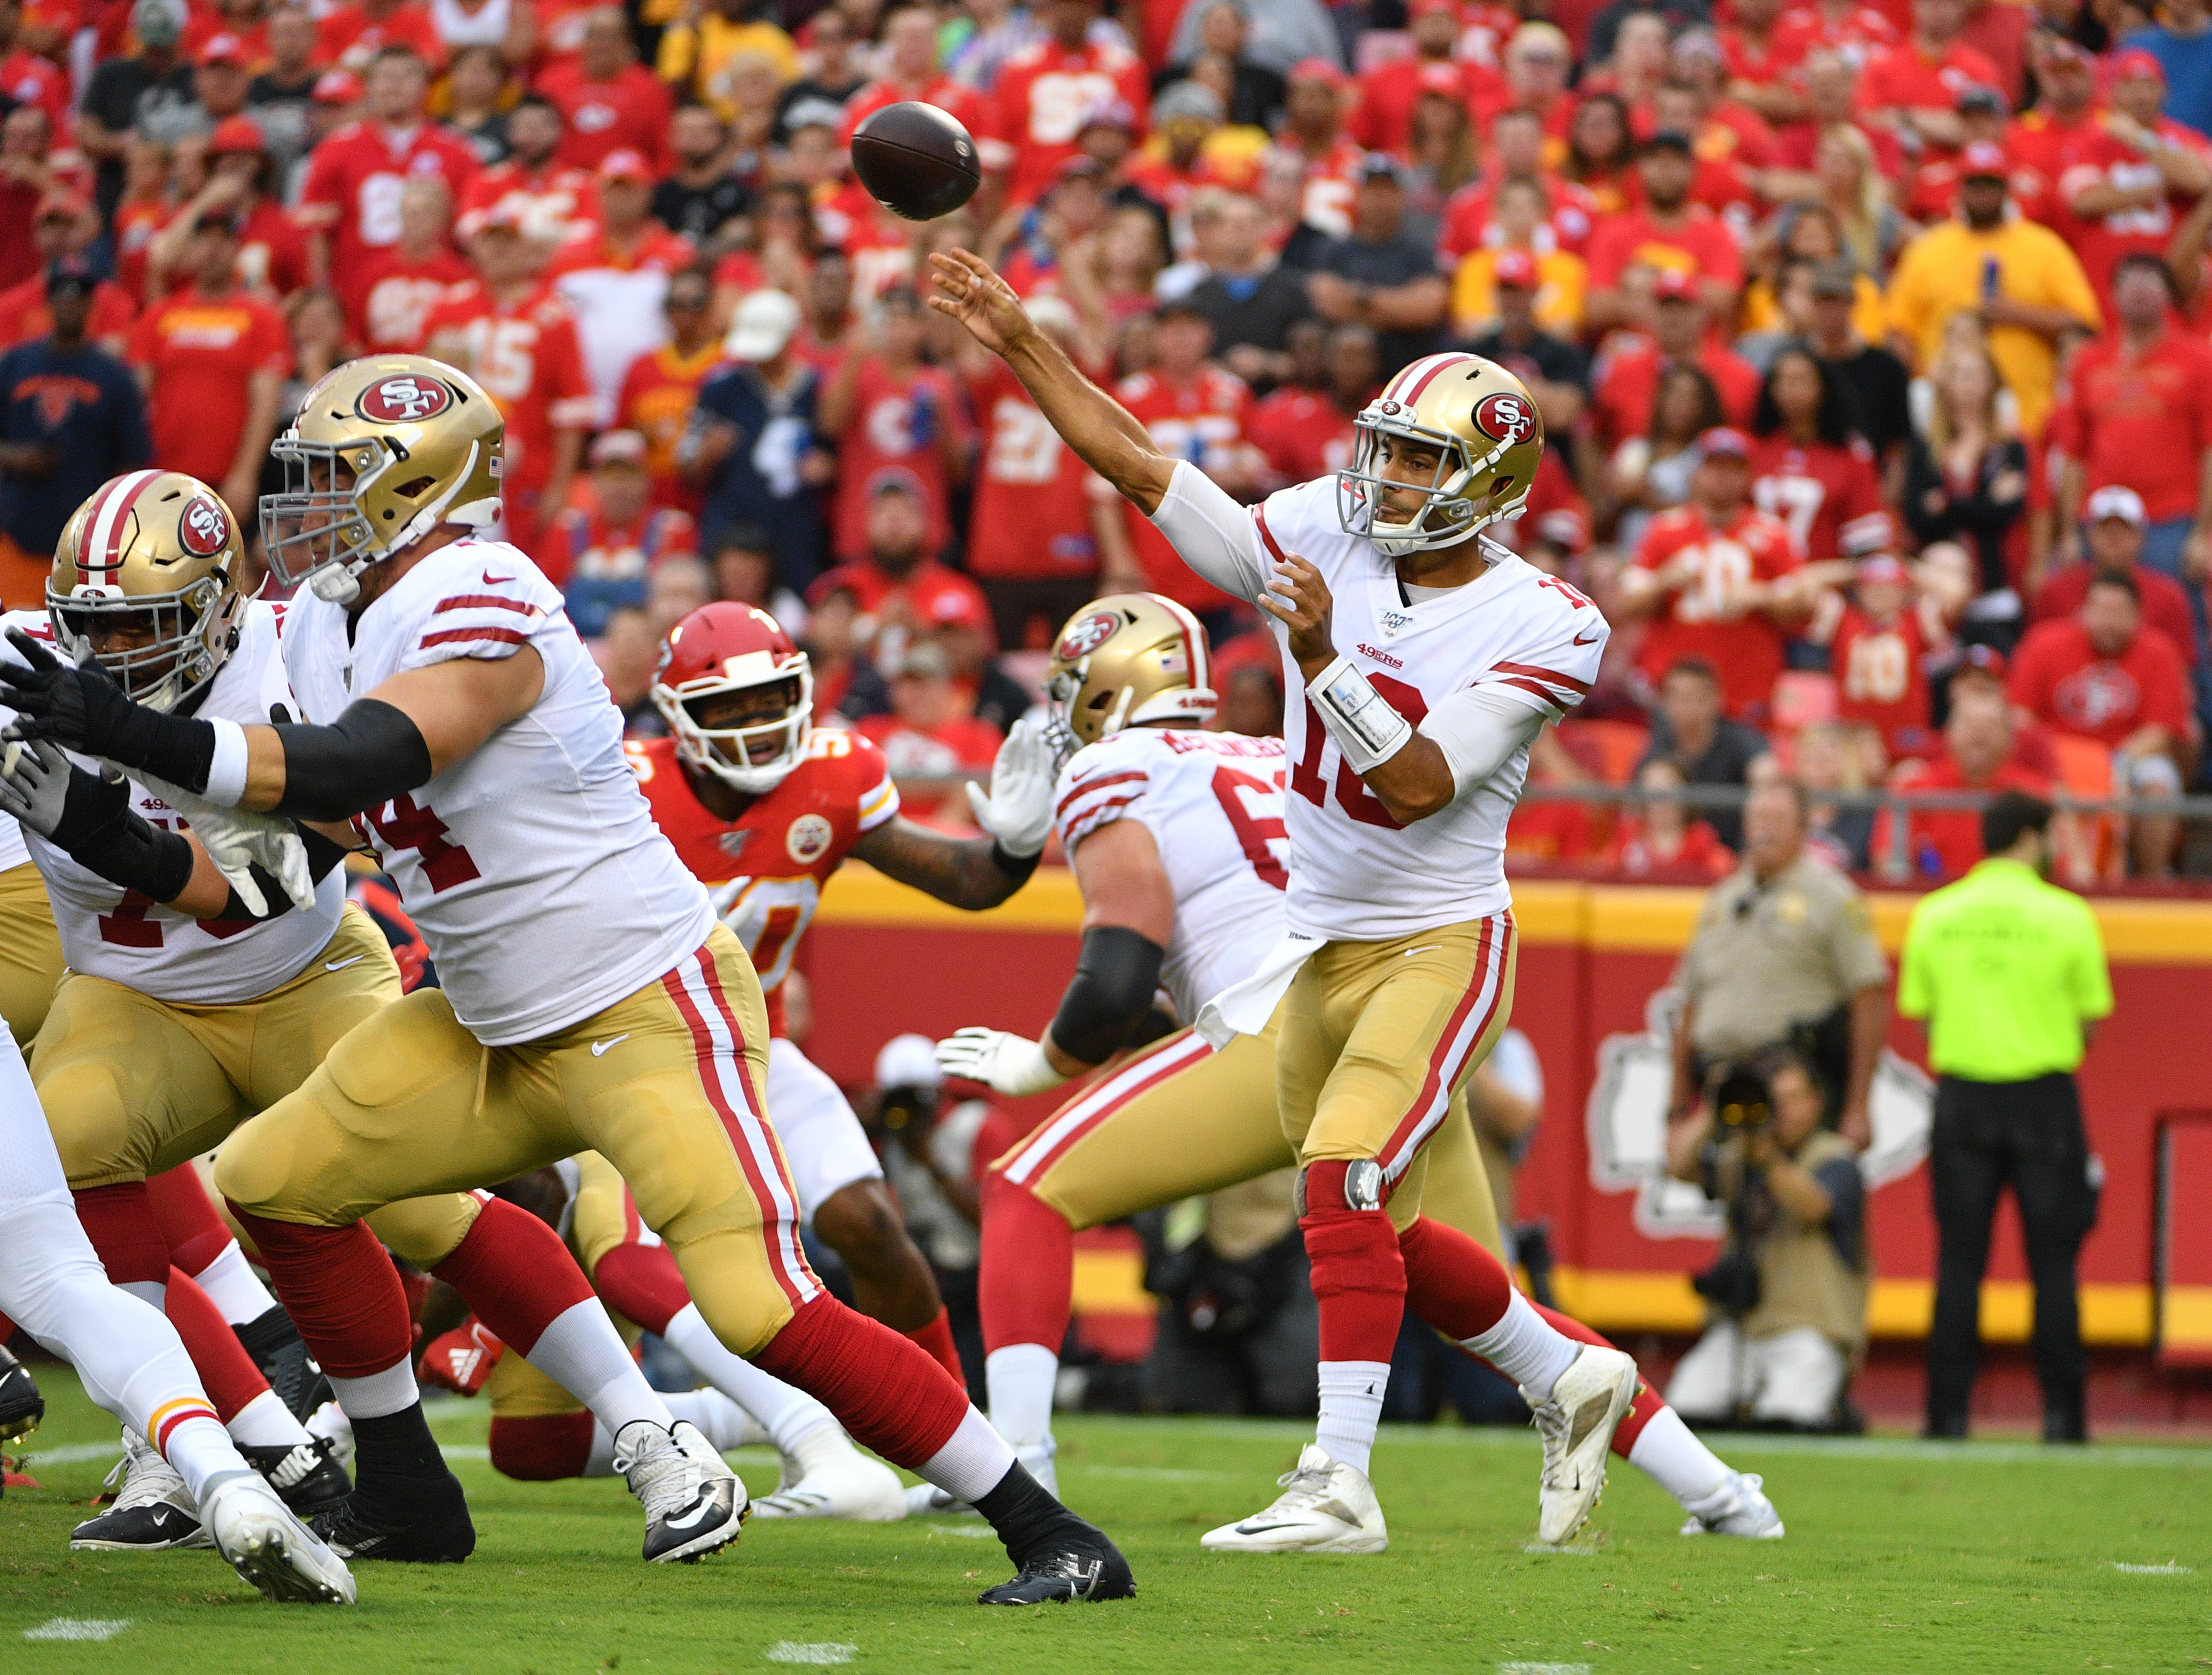 NFL: Preseason-San Francisco 49ers at Kansas City Chiefs